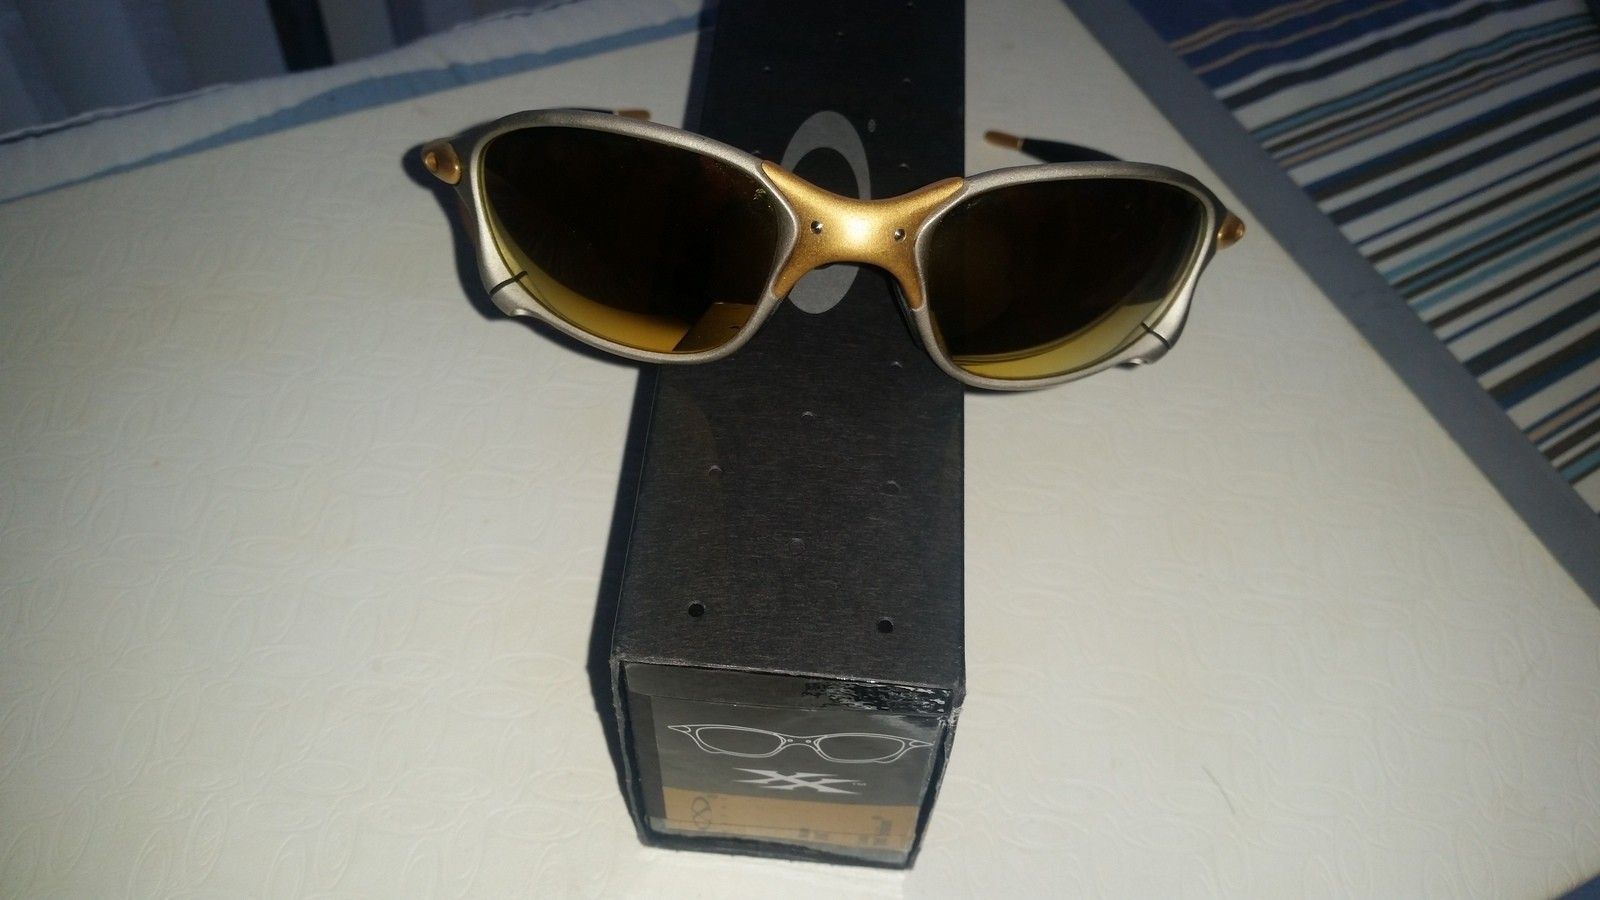 XX 24k and polished fire polarized Juliet - uploadfromtaptalk1420885598535.jpg